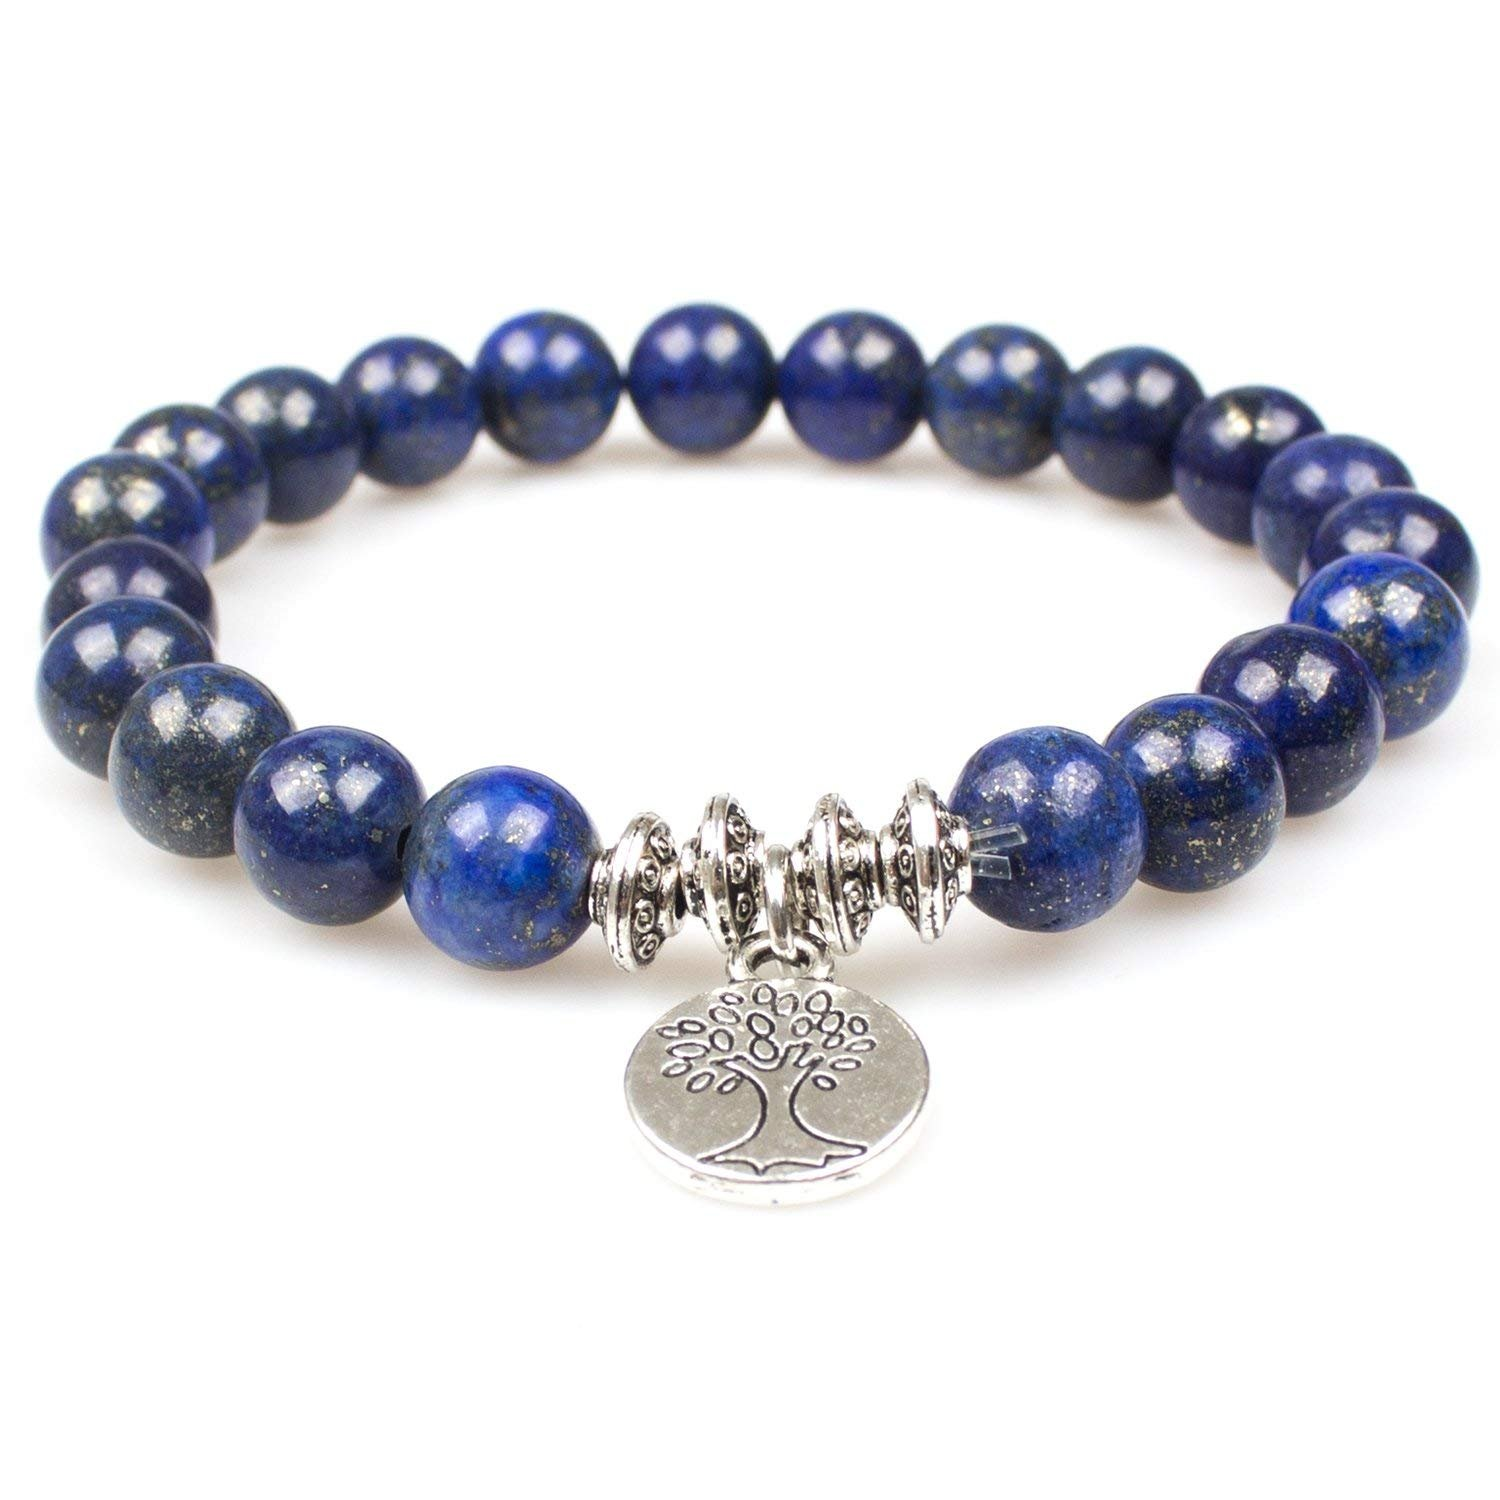 Women Bracelets,Handmade Lapis Lazuli Gem Semi Precious Gemstone 8mm Round Beads Stretch Women Bracelet(Lapis Lazuli Tree) PWMEN SL-012-NEW